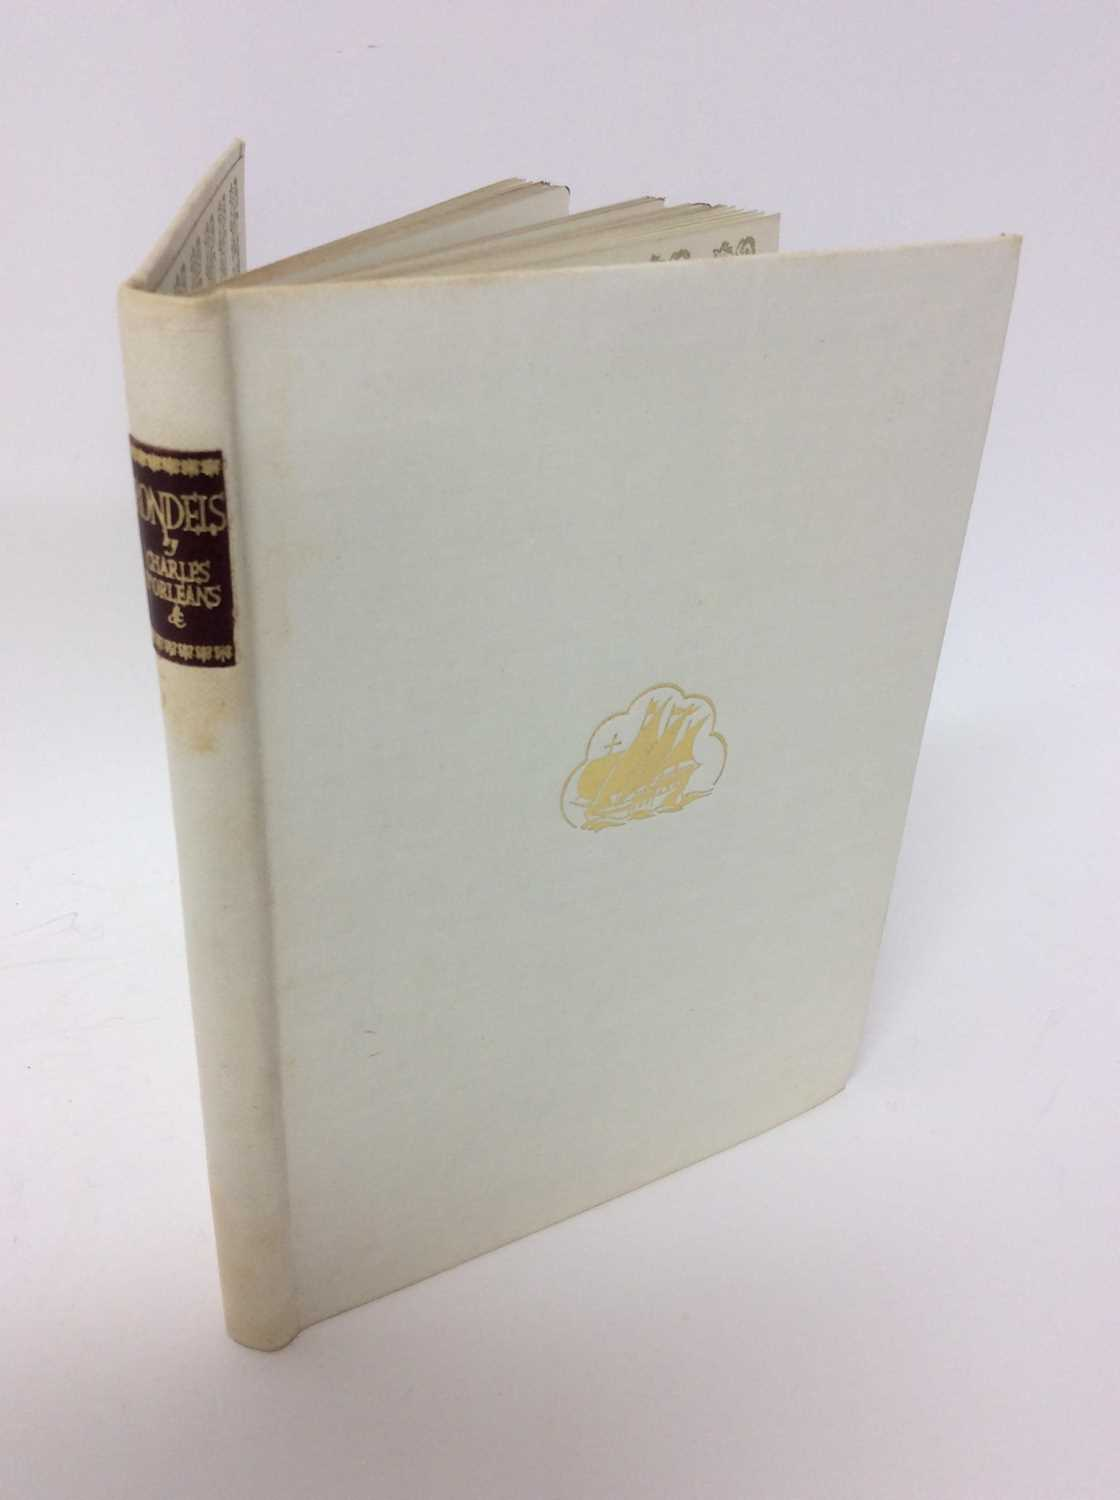 Lot 71 - Charles D'Orleans - Rondels, decorated by Guy Worsdell, The Caravel Press. London 1951